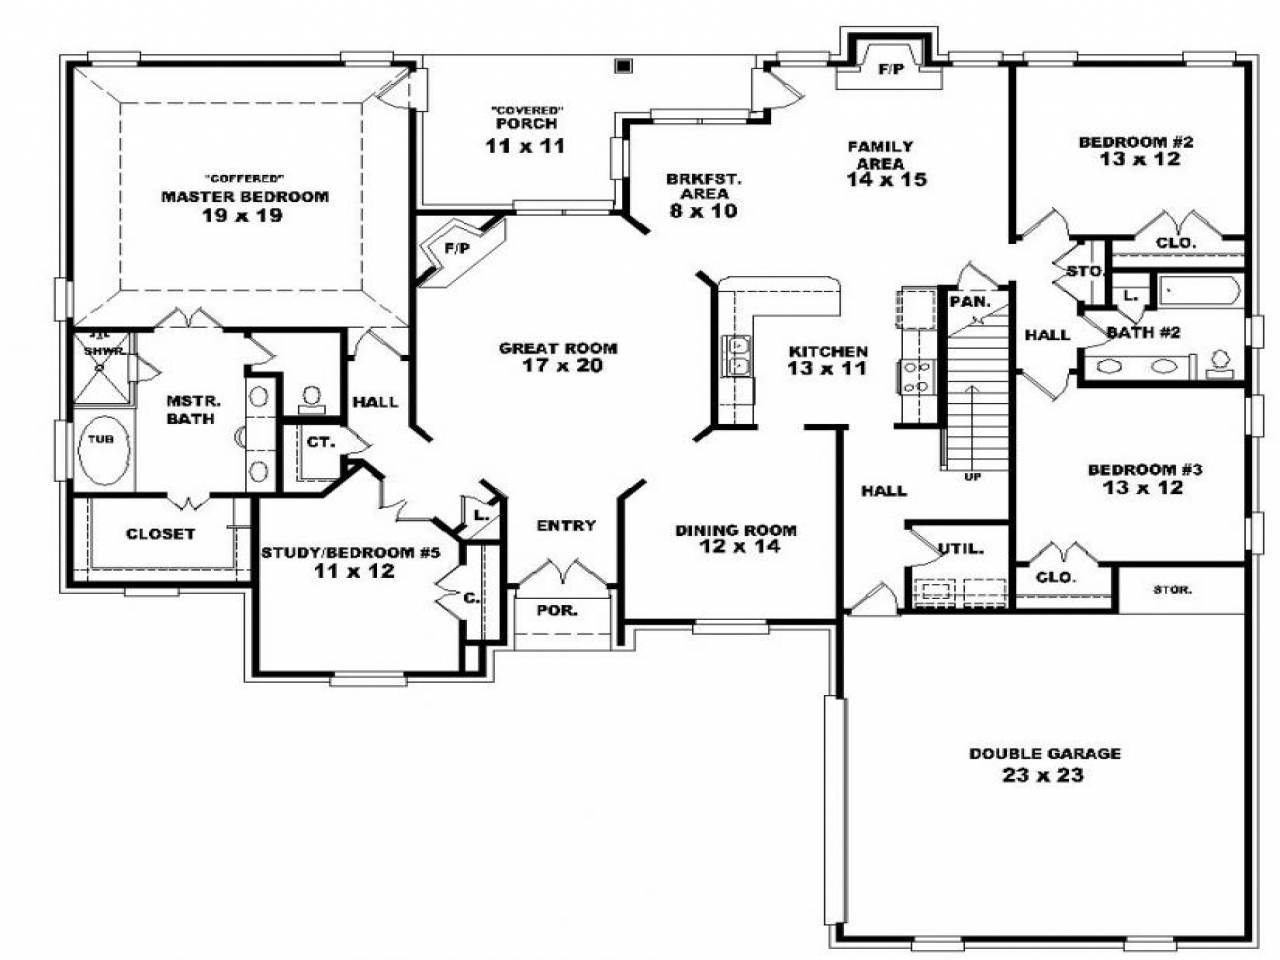 4 bedroom 2 story house plans story 3 bedroom with for 2 5 story house plans